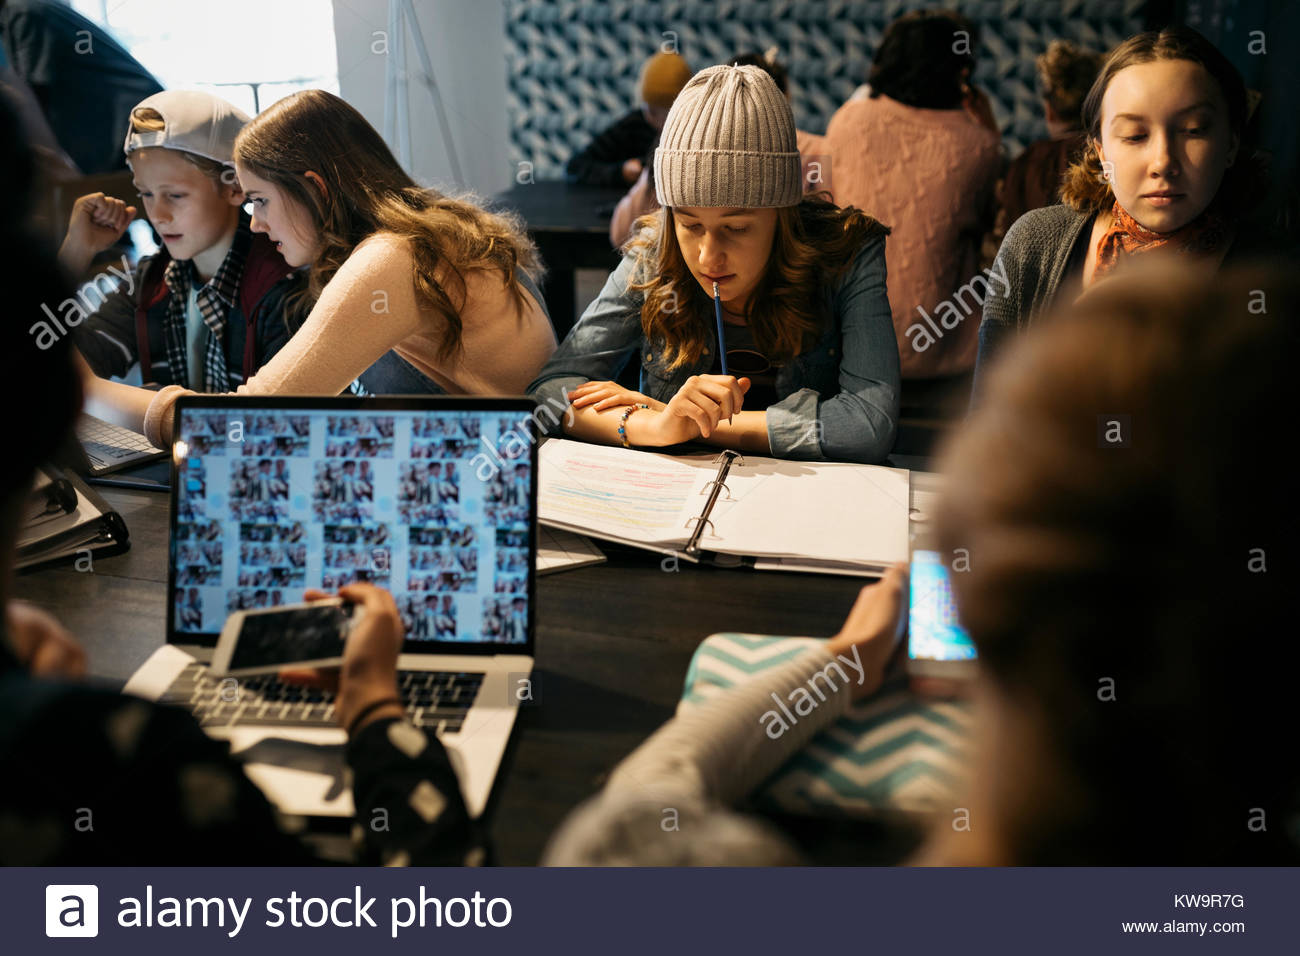 L'accent high school girl student notes in cafe Photo Stock